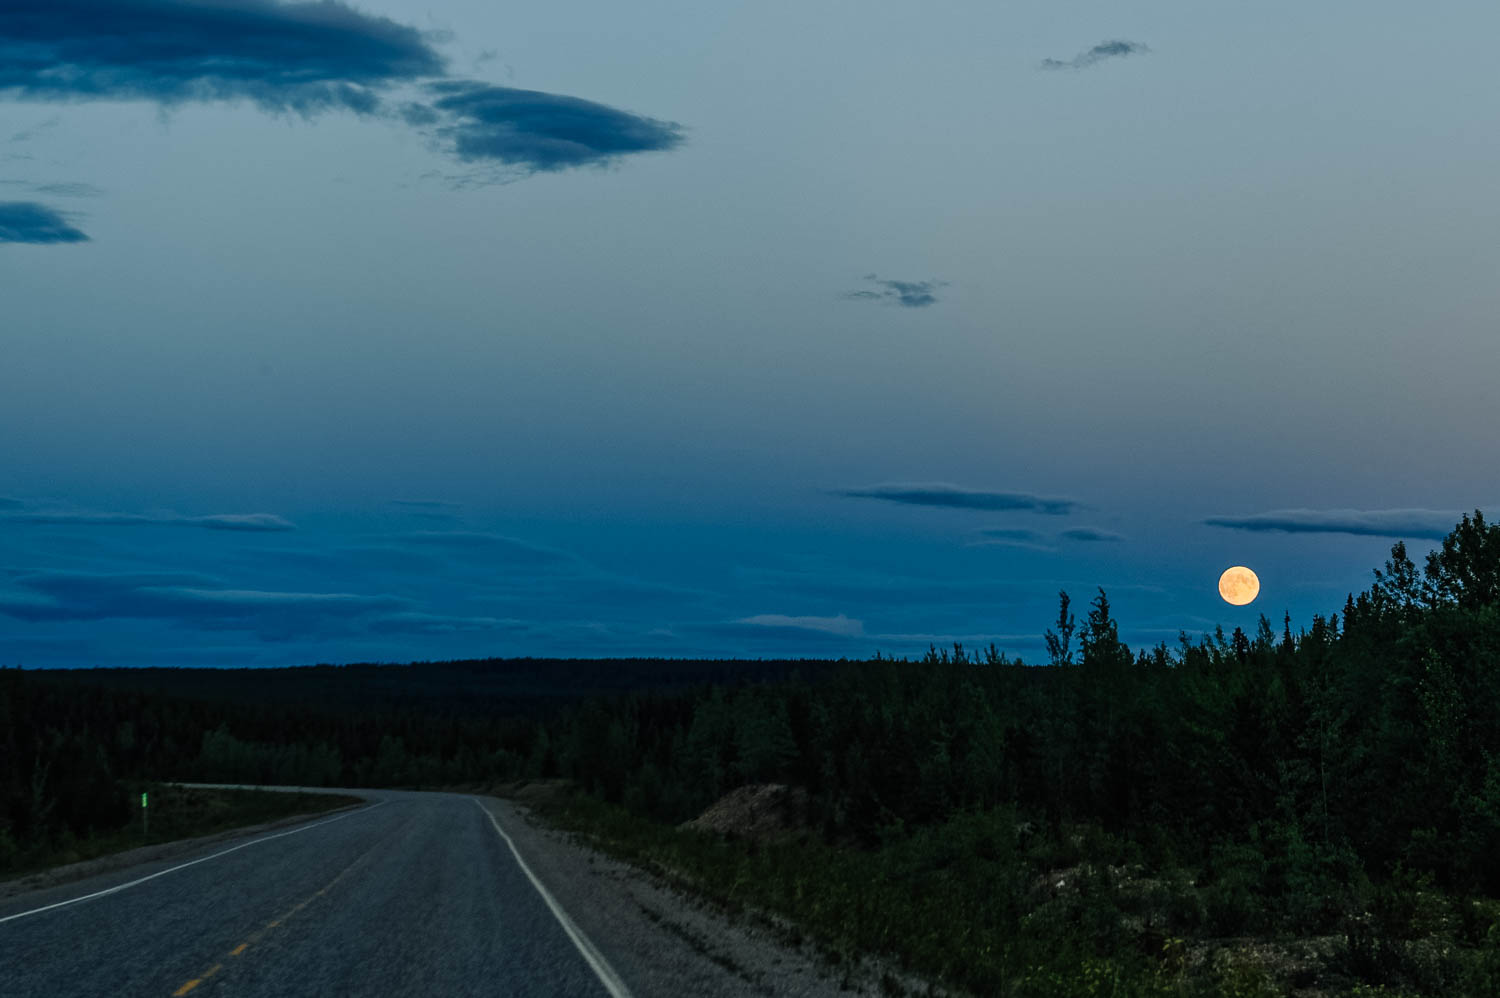 Full moon rising over the Stewart-Cassiar Highway.